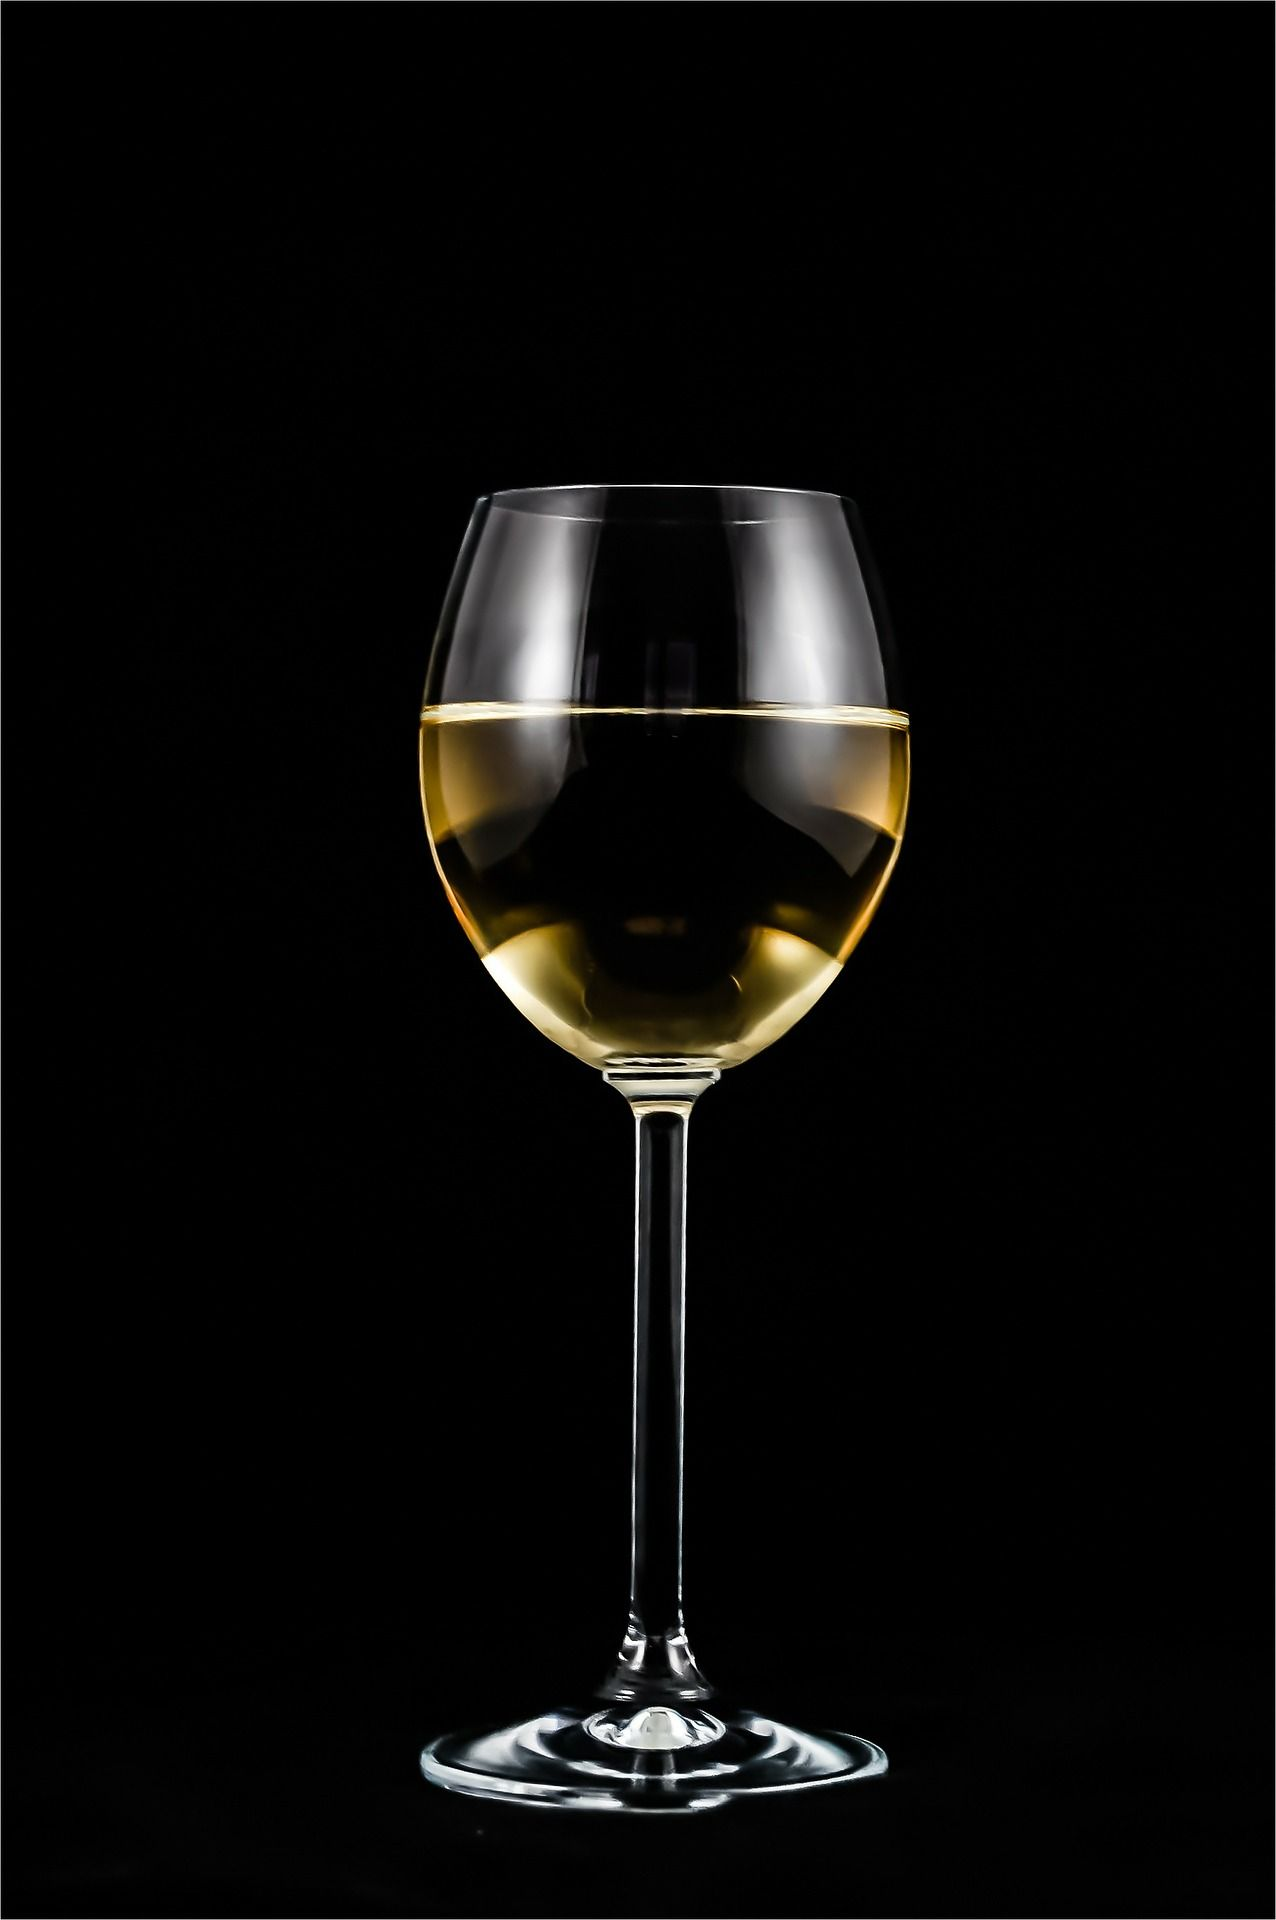 Mobile Wallpaper, Iphone Wallpaper, Wine Drinks, Beverages, Drink Photo, Alcohol Treatment